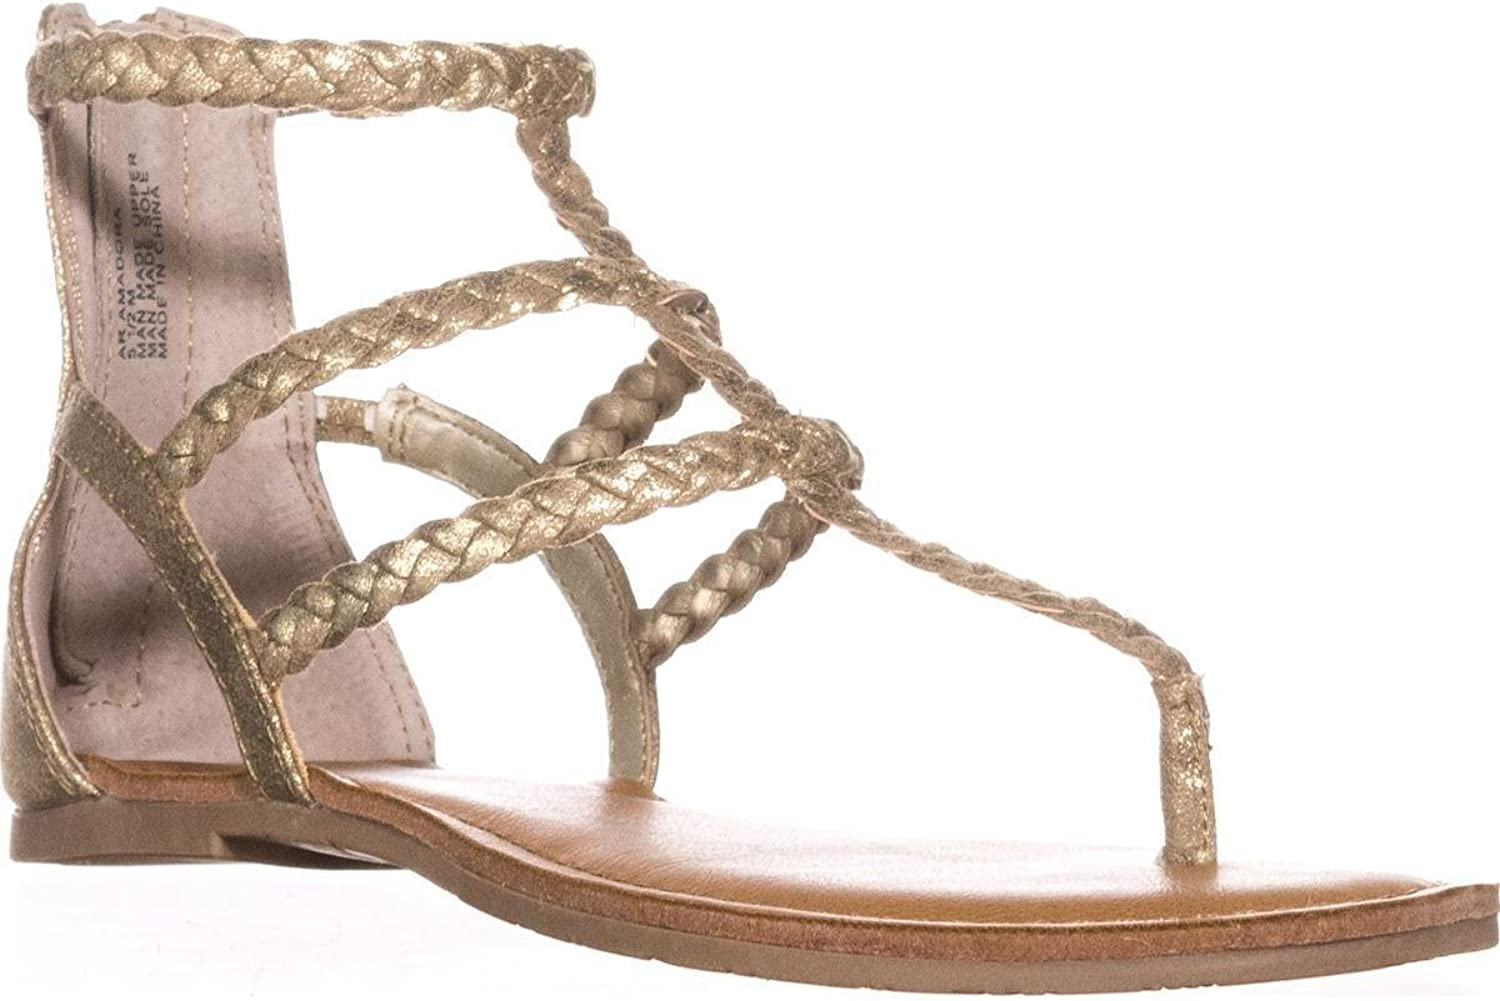 American Rag Womens Madora Open Toe Casual Ankle Strap Sandals, gold, Size 8.5